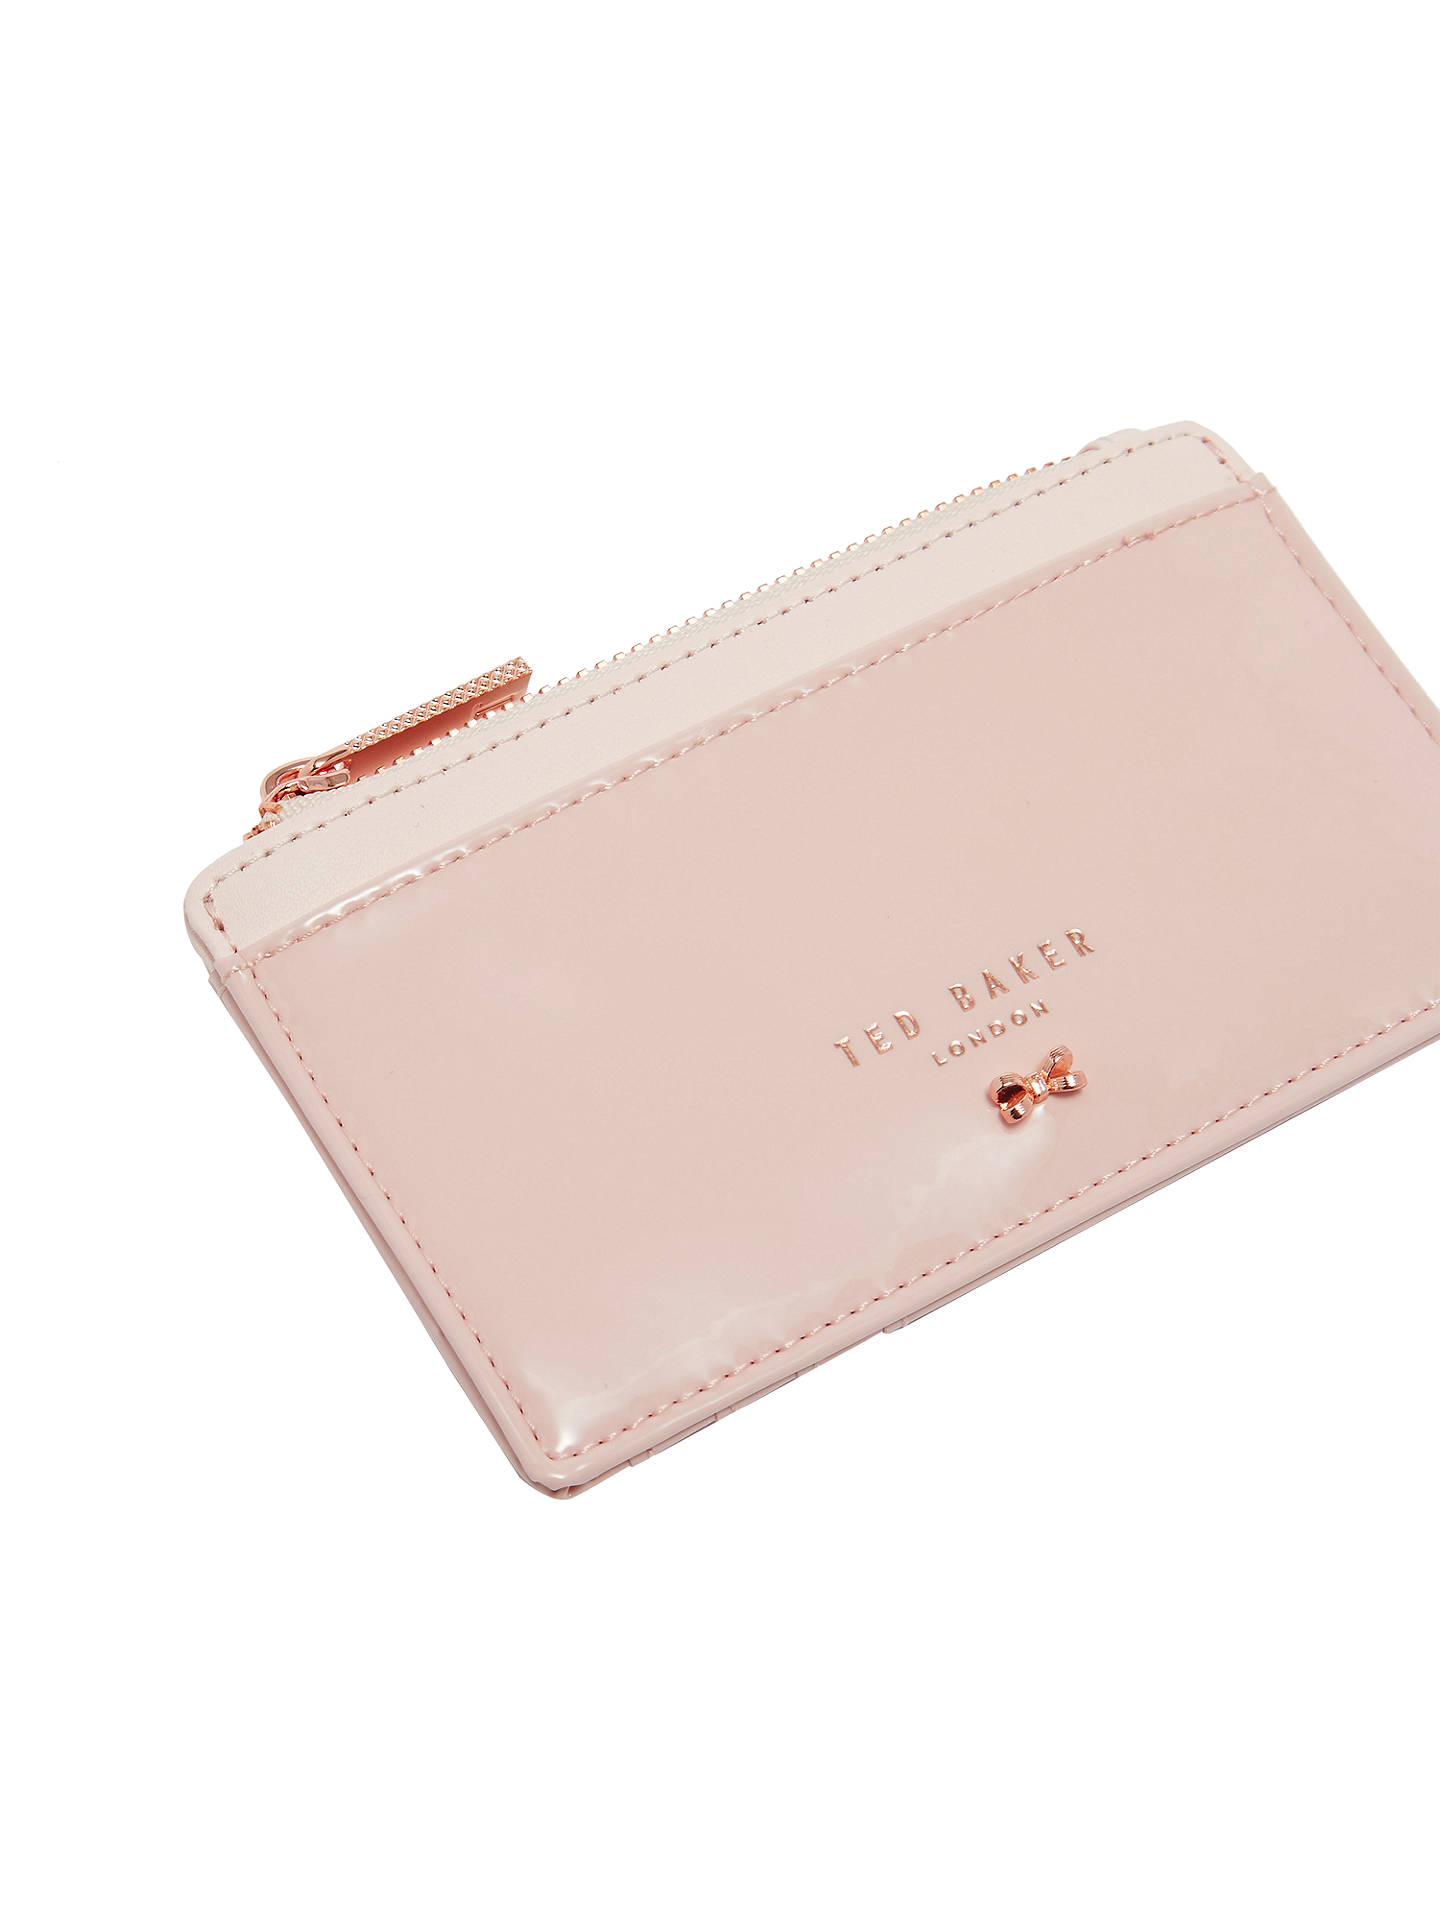 5fa51468092 Ted Baker Roselyn Leather Mini Purse, Light Pink